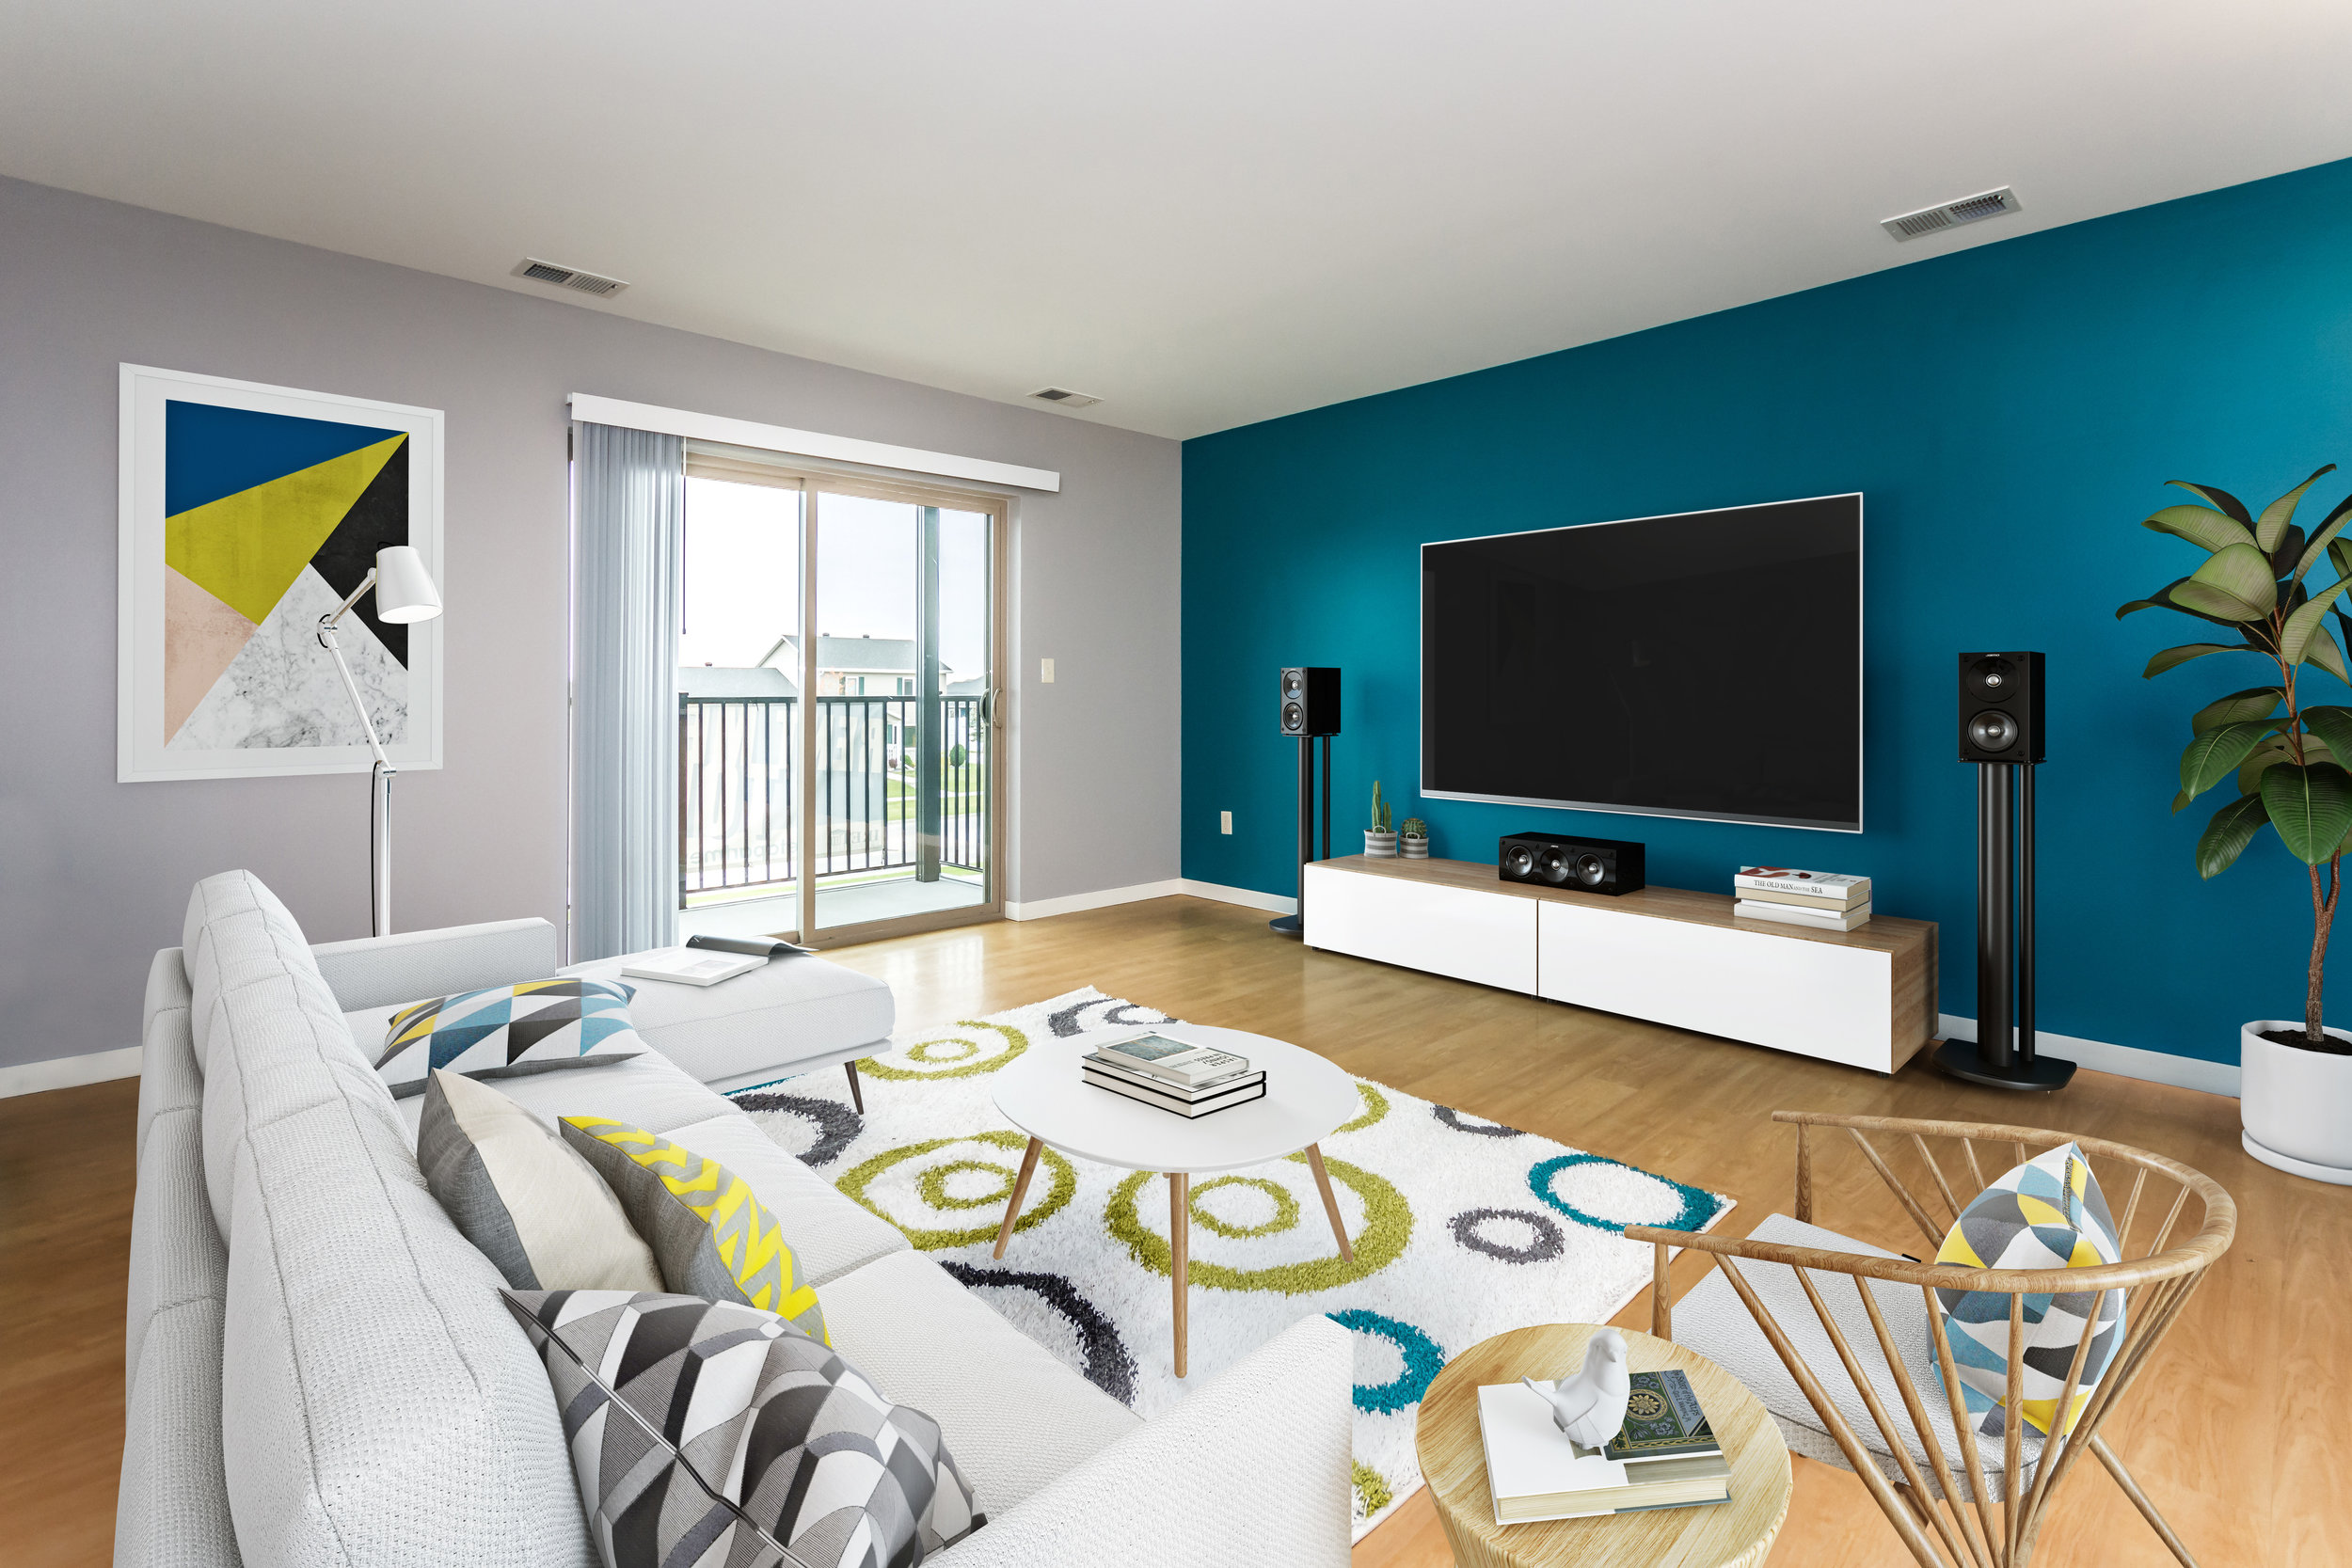 03 Modern Open Layouts with Stylish Accents.jpg